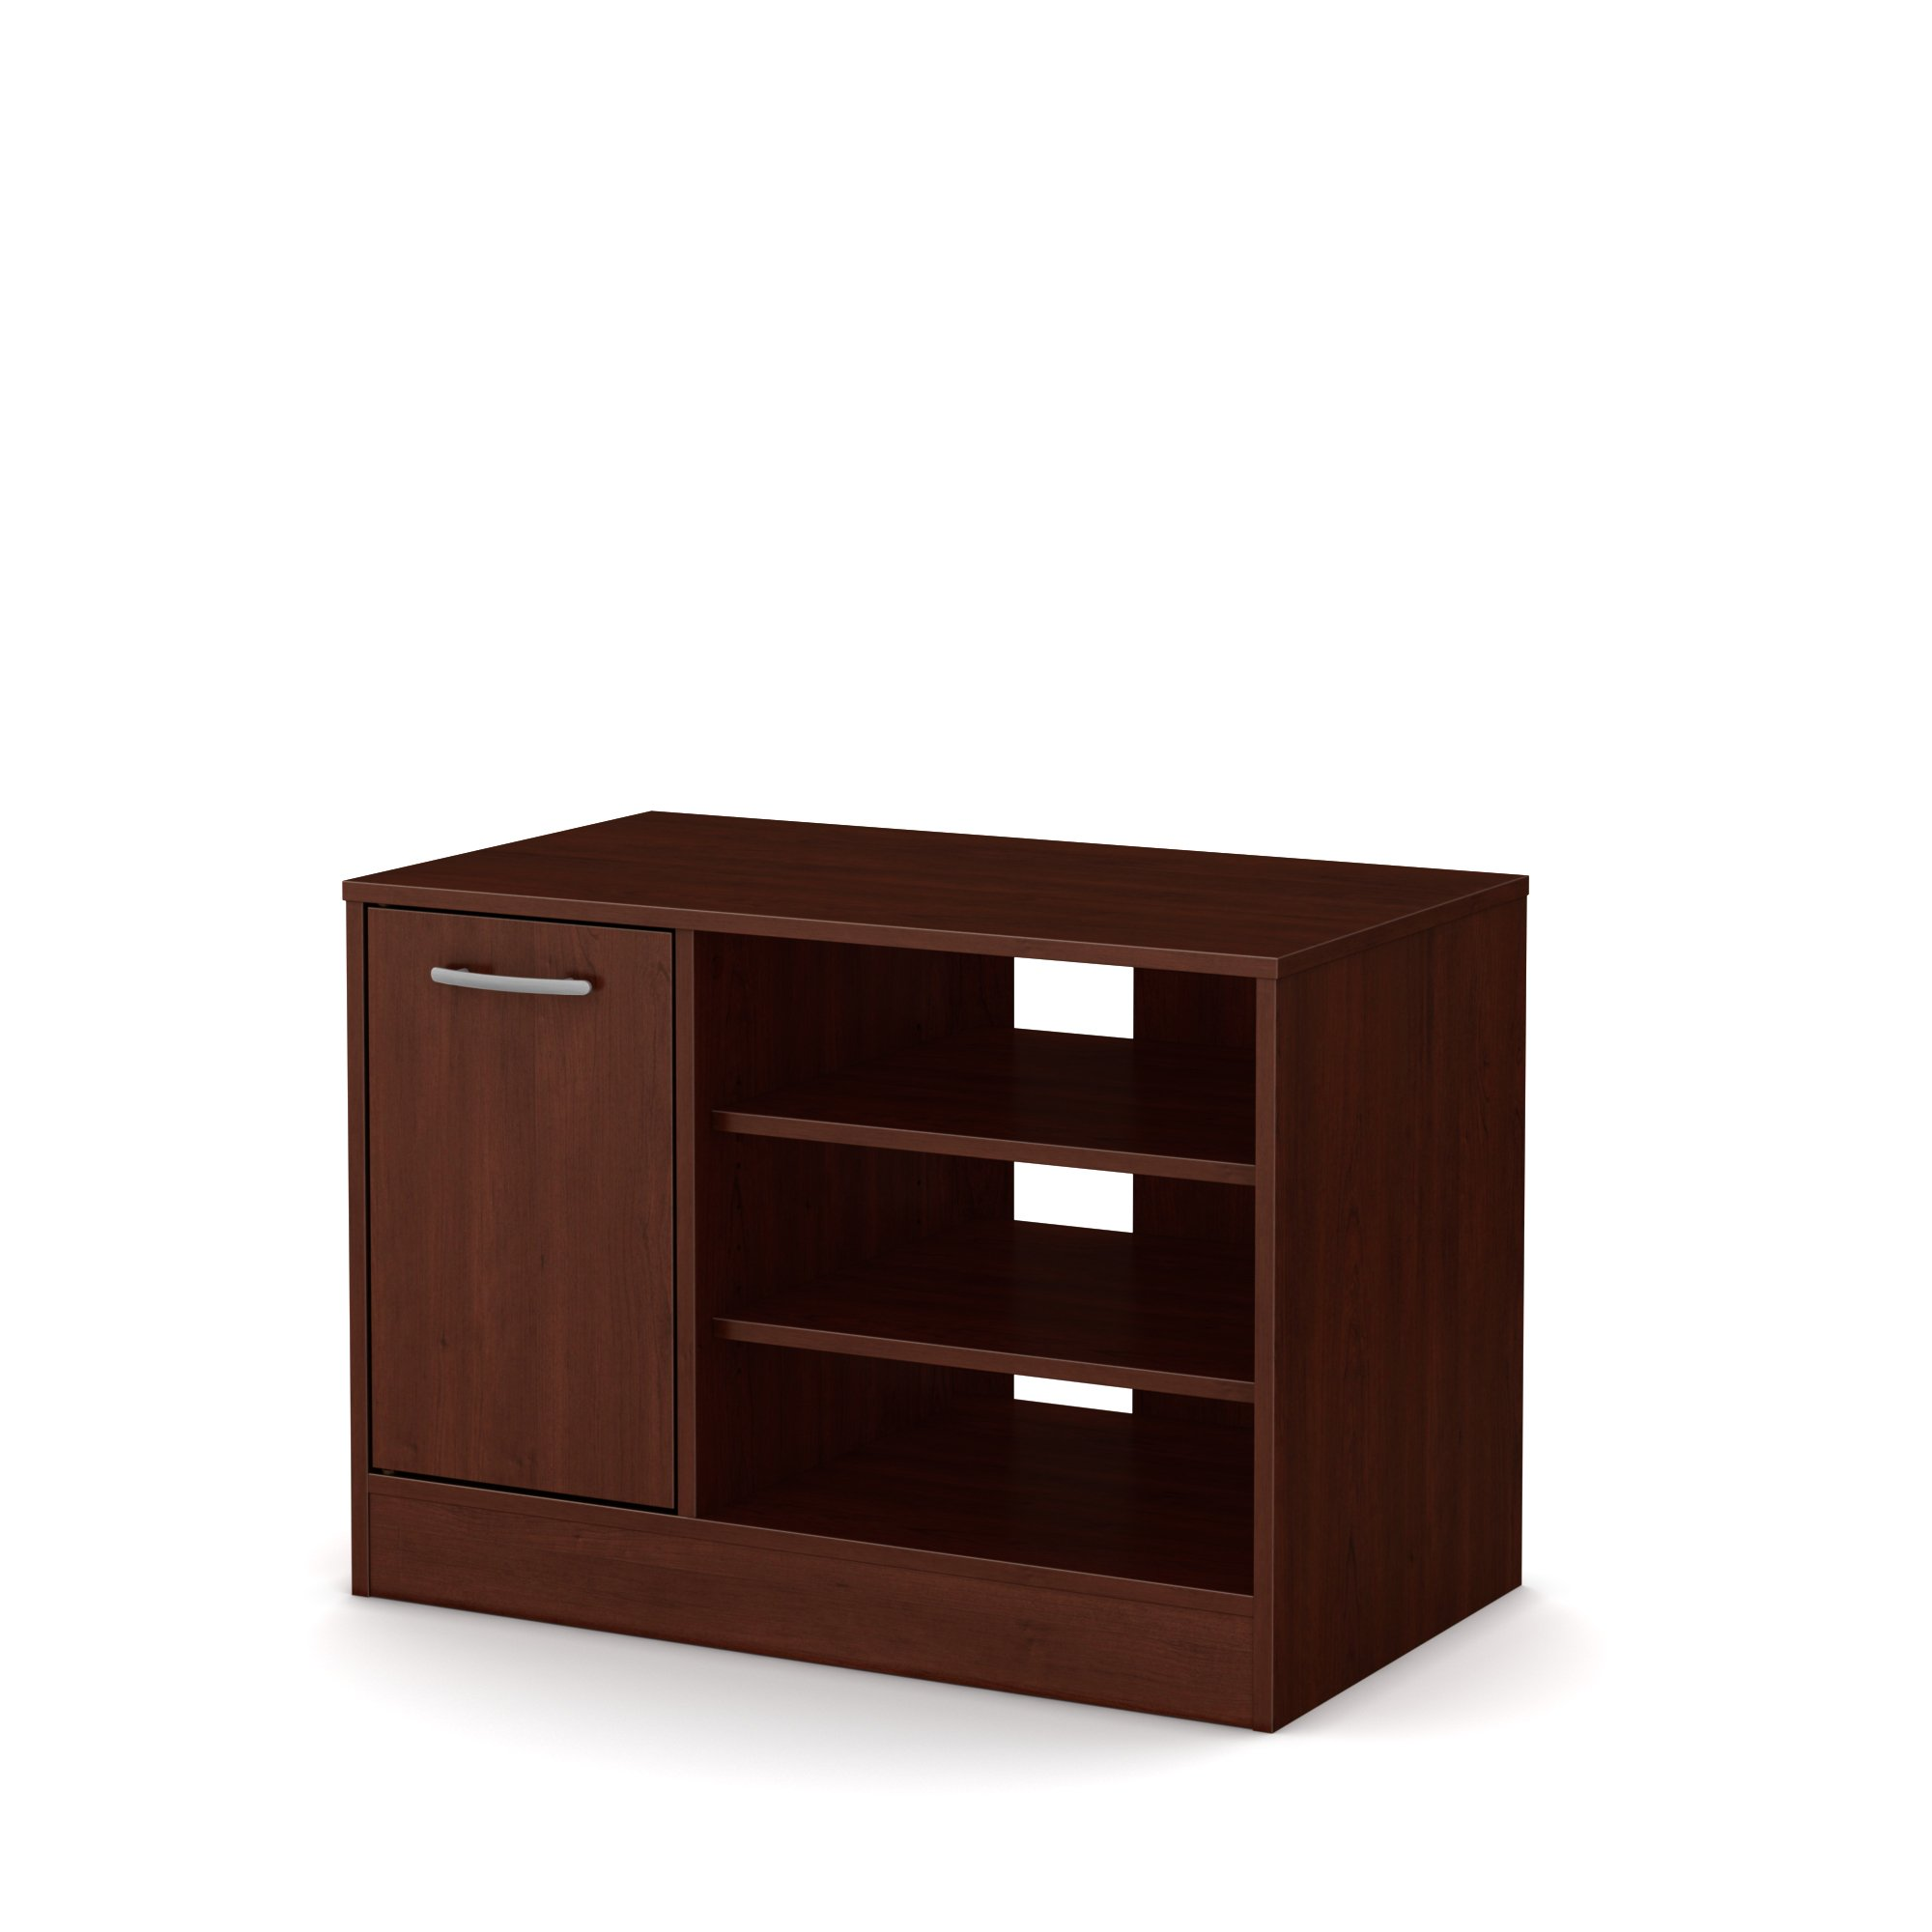 South Shore Axess TV Stand - Fits TVs Up to 42'' Wide - Royal Cherry